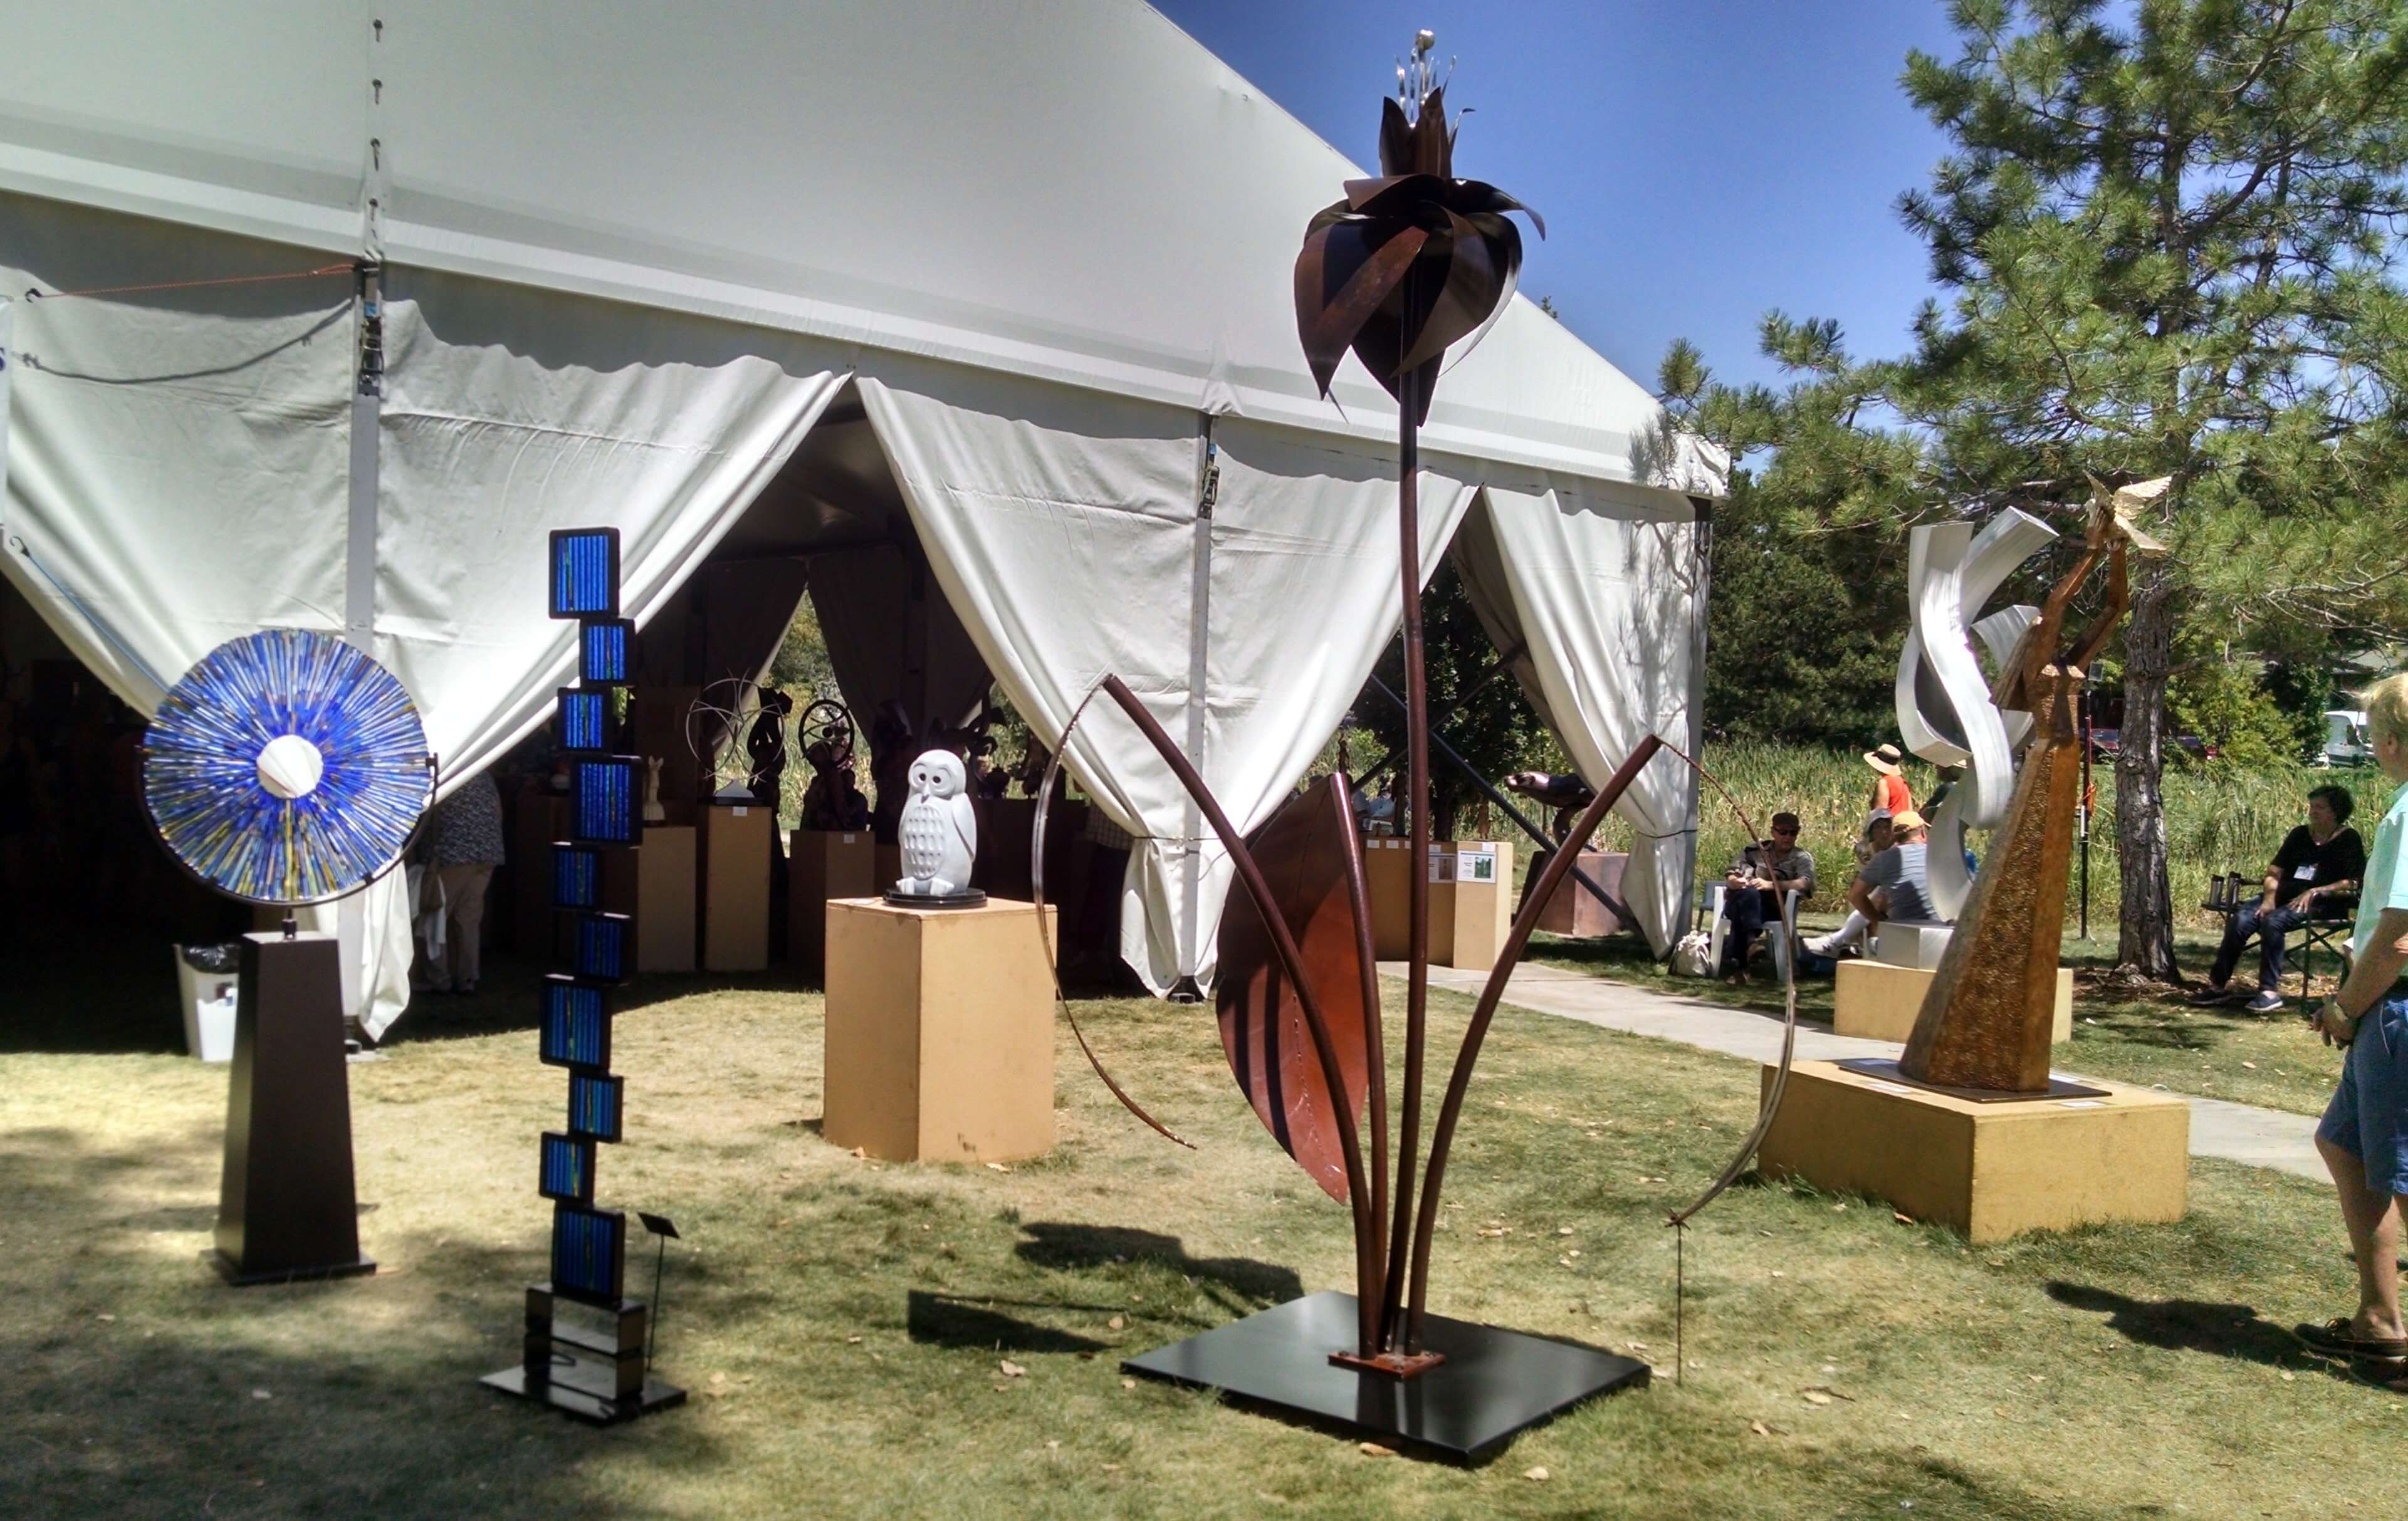 Sculpture in the Park 2018